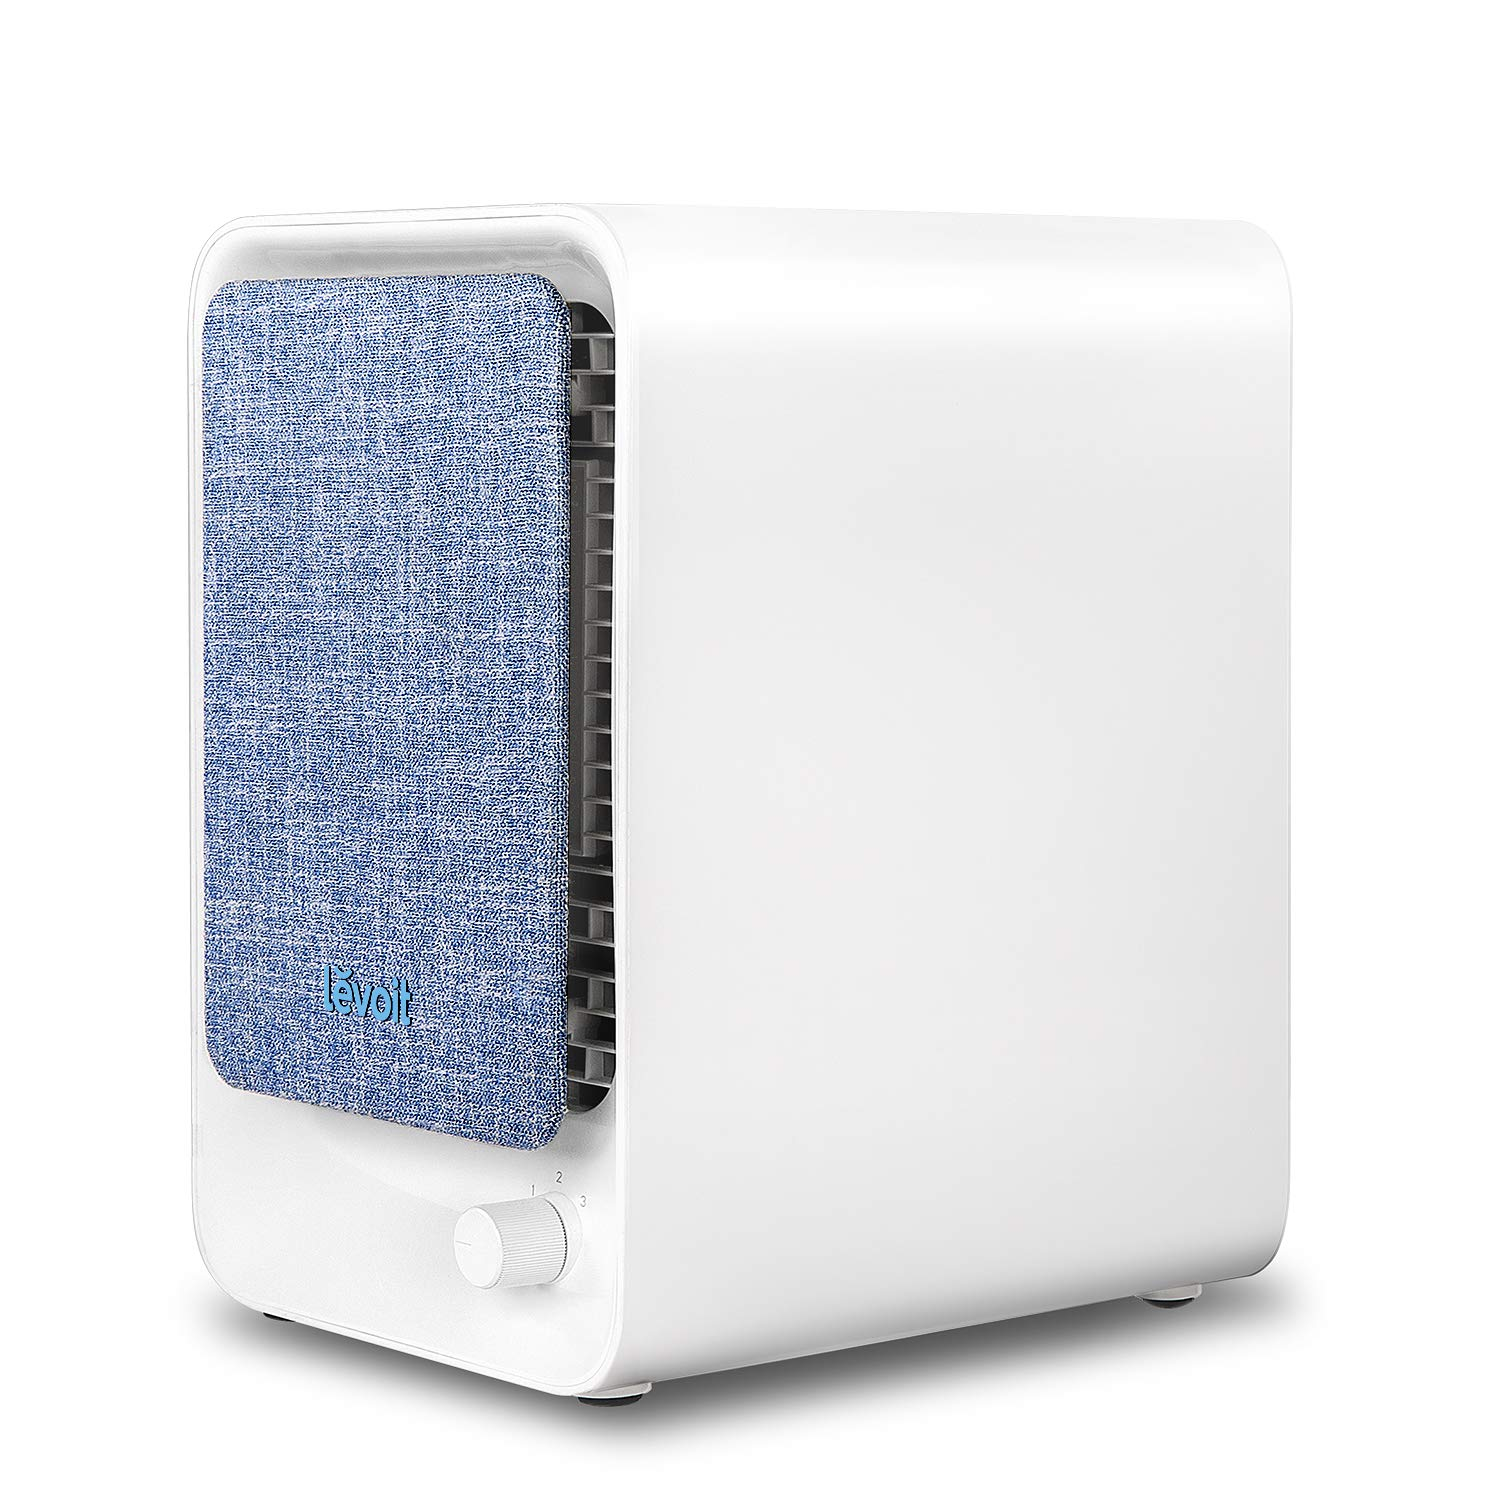 LEVOIT Air Purifier for Home with HEPA Filter, Compact Air Cleaner Purifiers for Allergies and Pets, Smokers,Pollen,Mold,Dust,Quiet Odor Eliminator for Bedroom,Small Room, LV-H126,2-Year Warranty